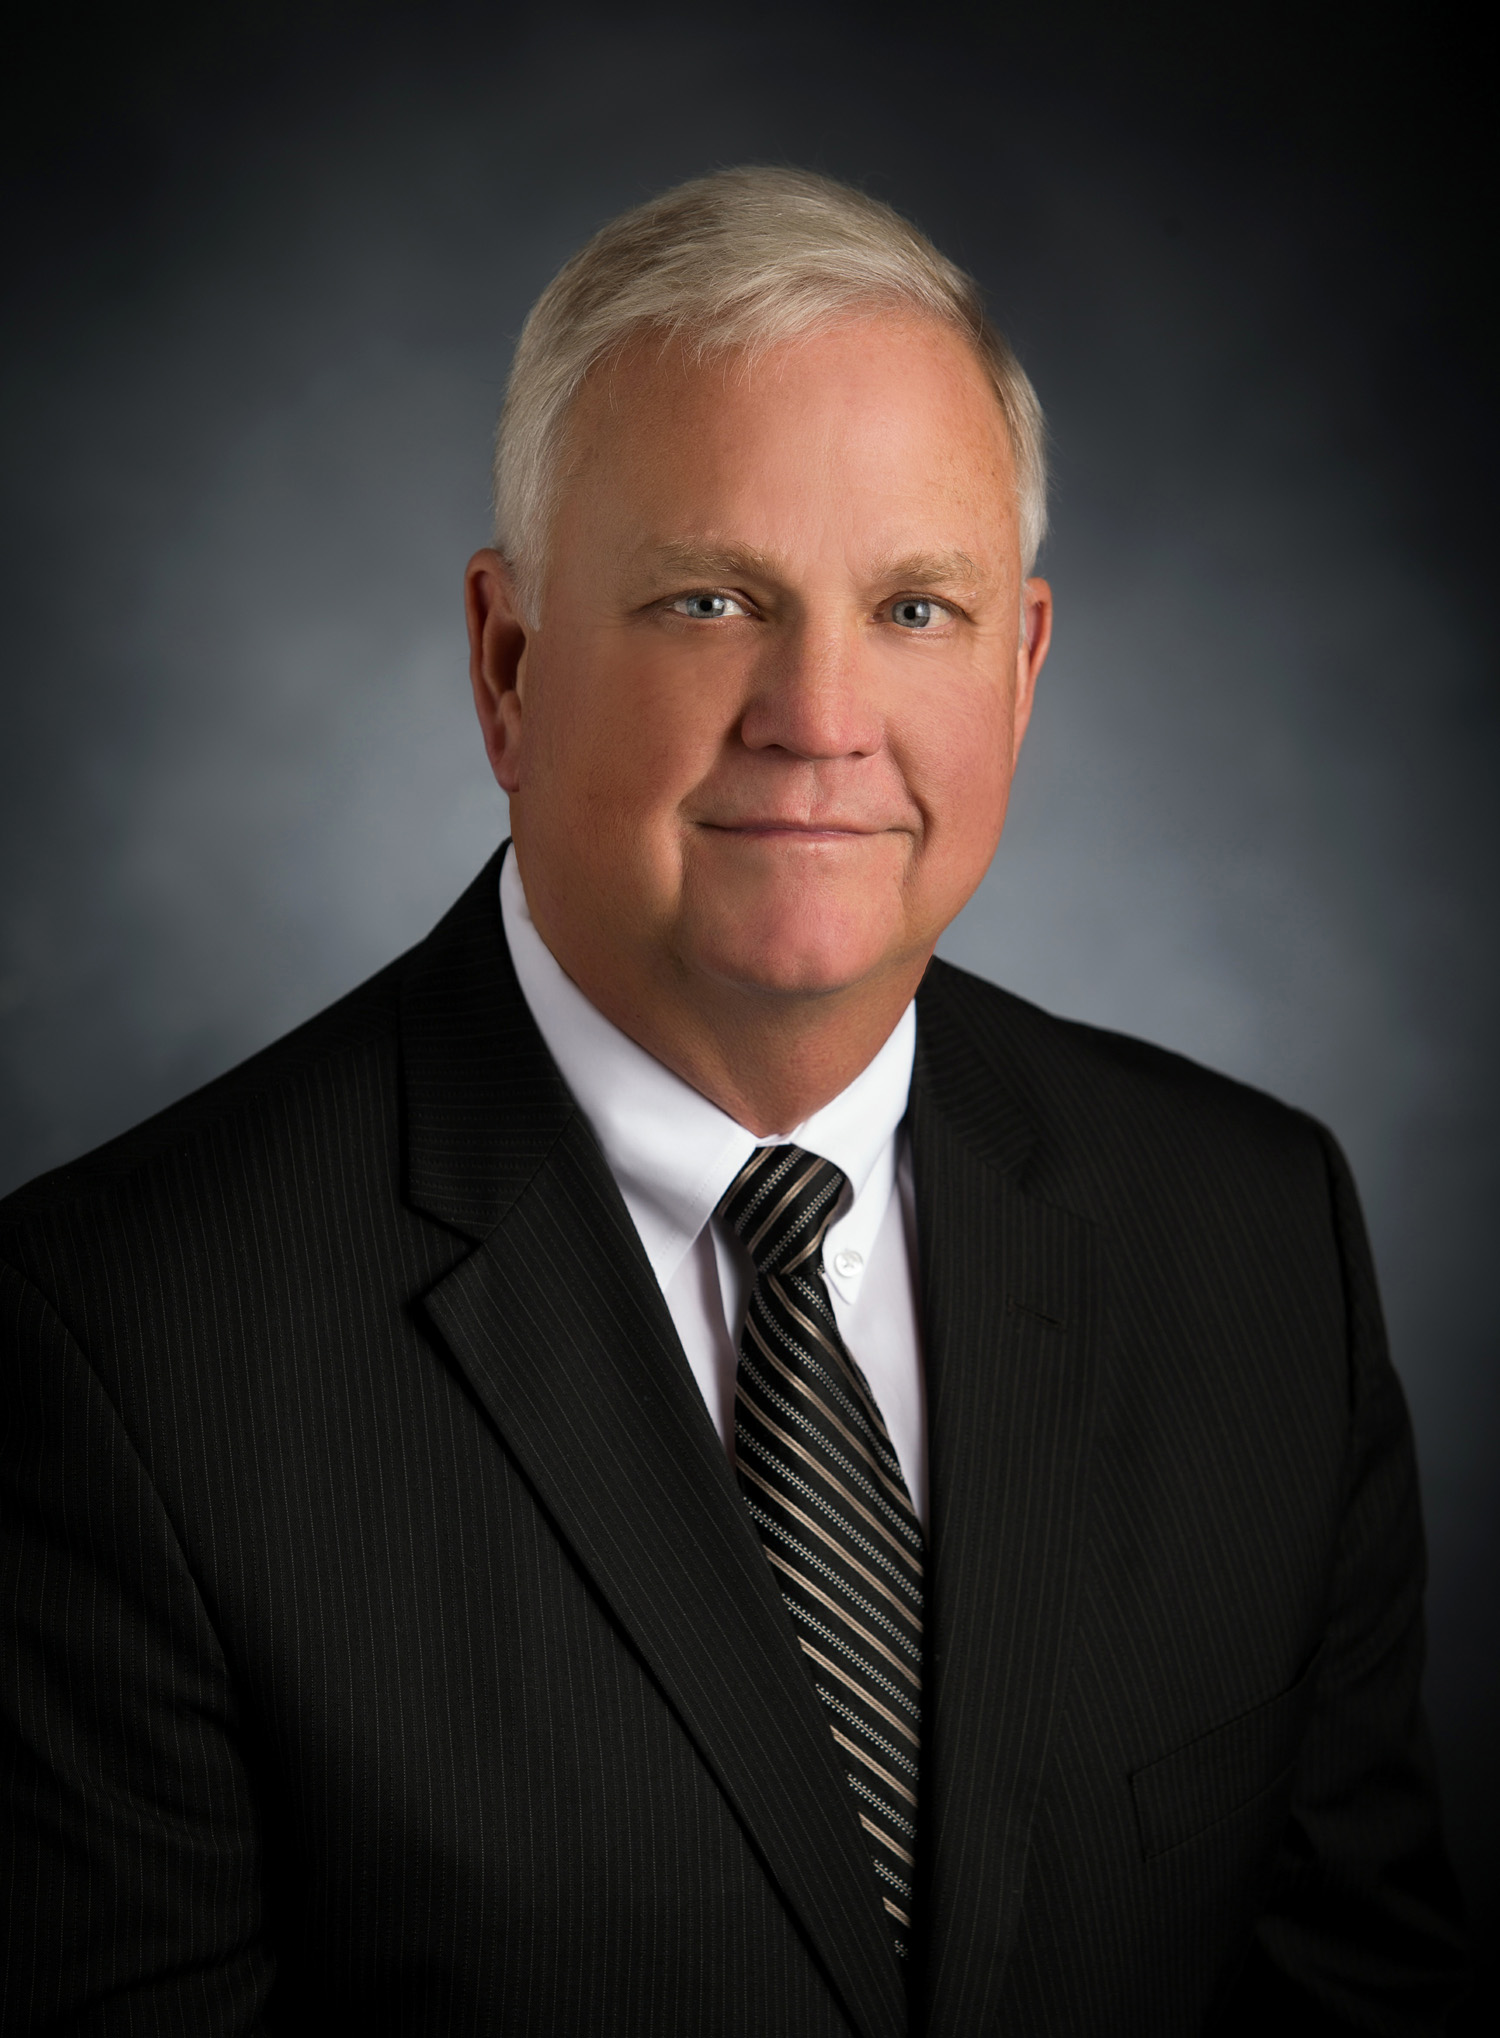 Gary Lorenz, Ankeny Mayor